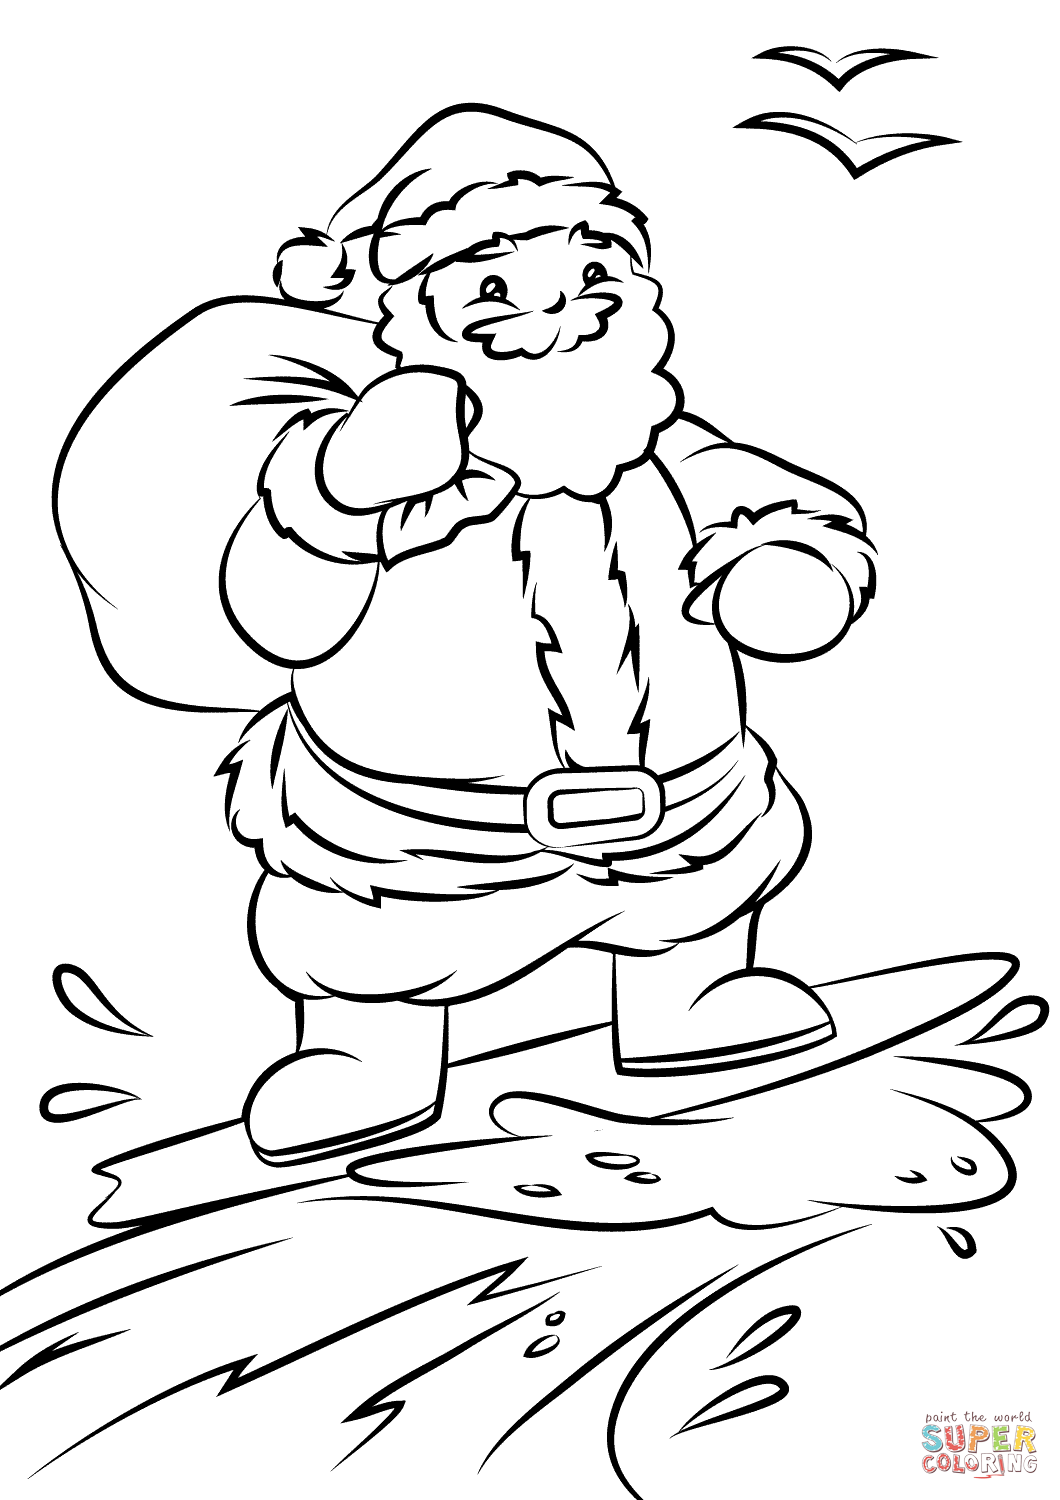 Santa Coloring Activities With Surfing Page Free Printable Pages